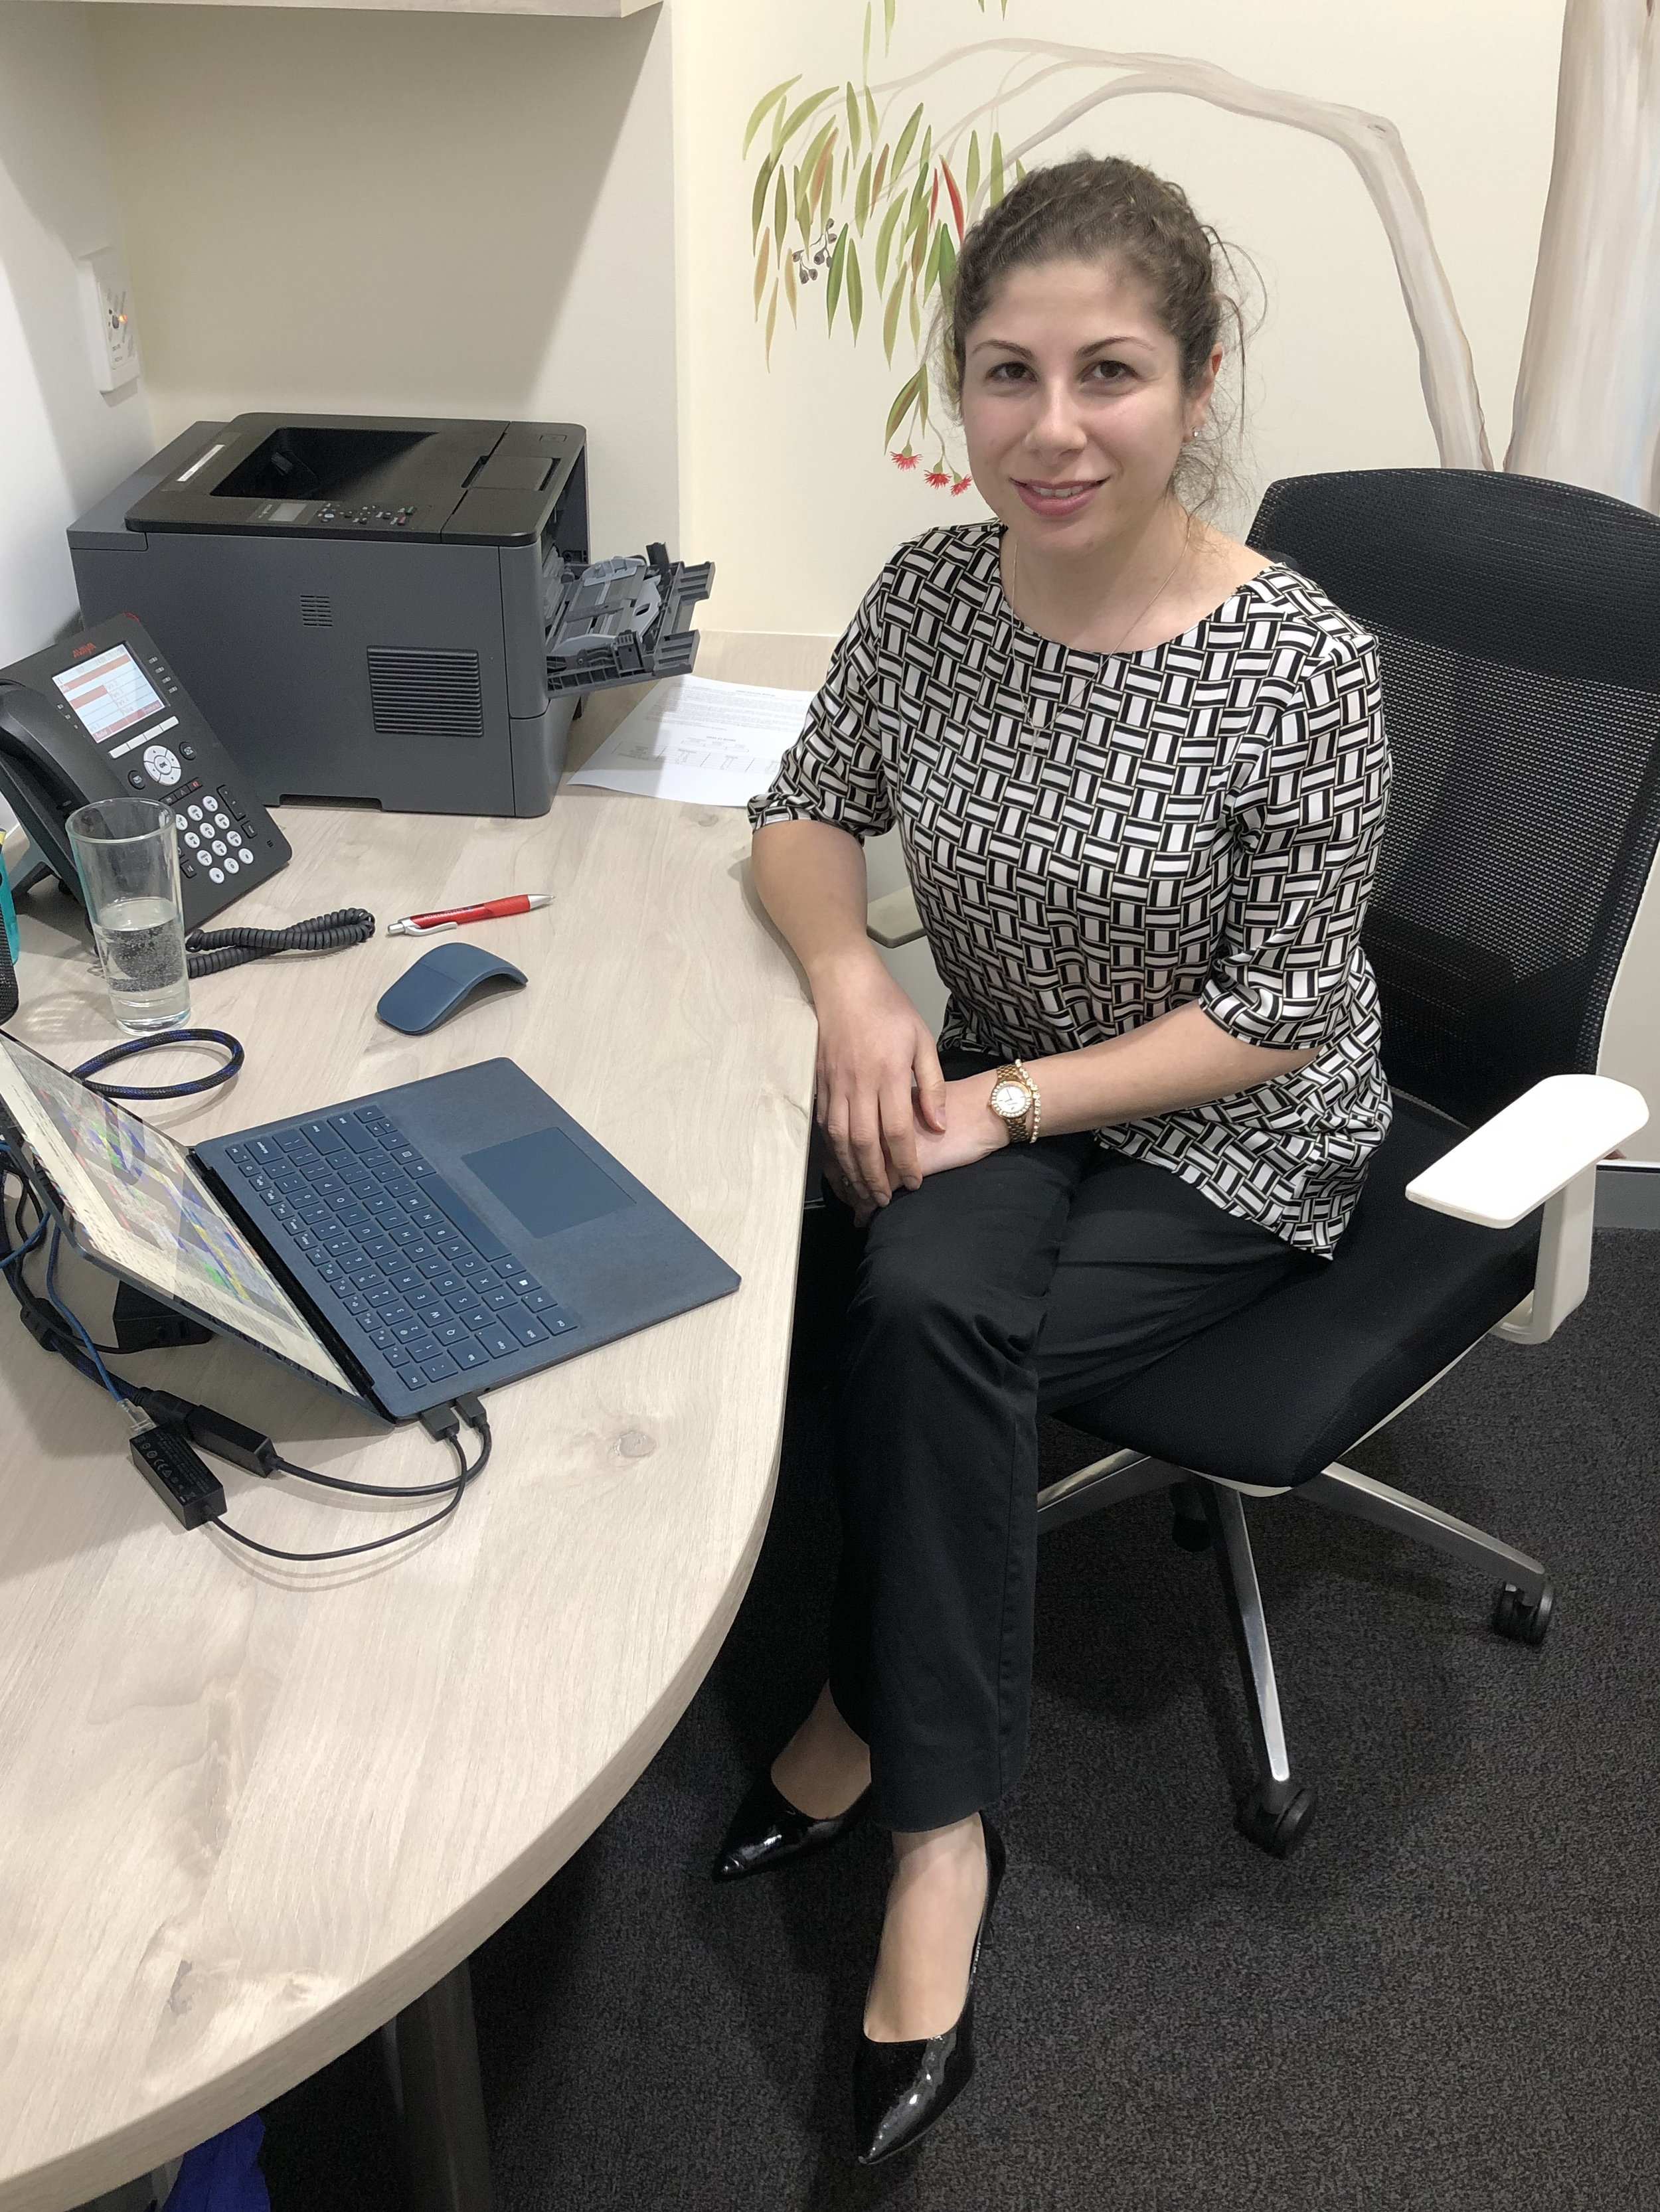 Dr Raquelle Semrani - MBBS, BSc (Adv.), FRACGP, DCHDr Semrani is a Vocationally Registered Fellow of the RACGP since 2015 and has a Diploma of Child Health. Prior to 2015, she trained as a GP registrar with WentWest. We are pleased that she has joined our practice in March 2018.